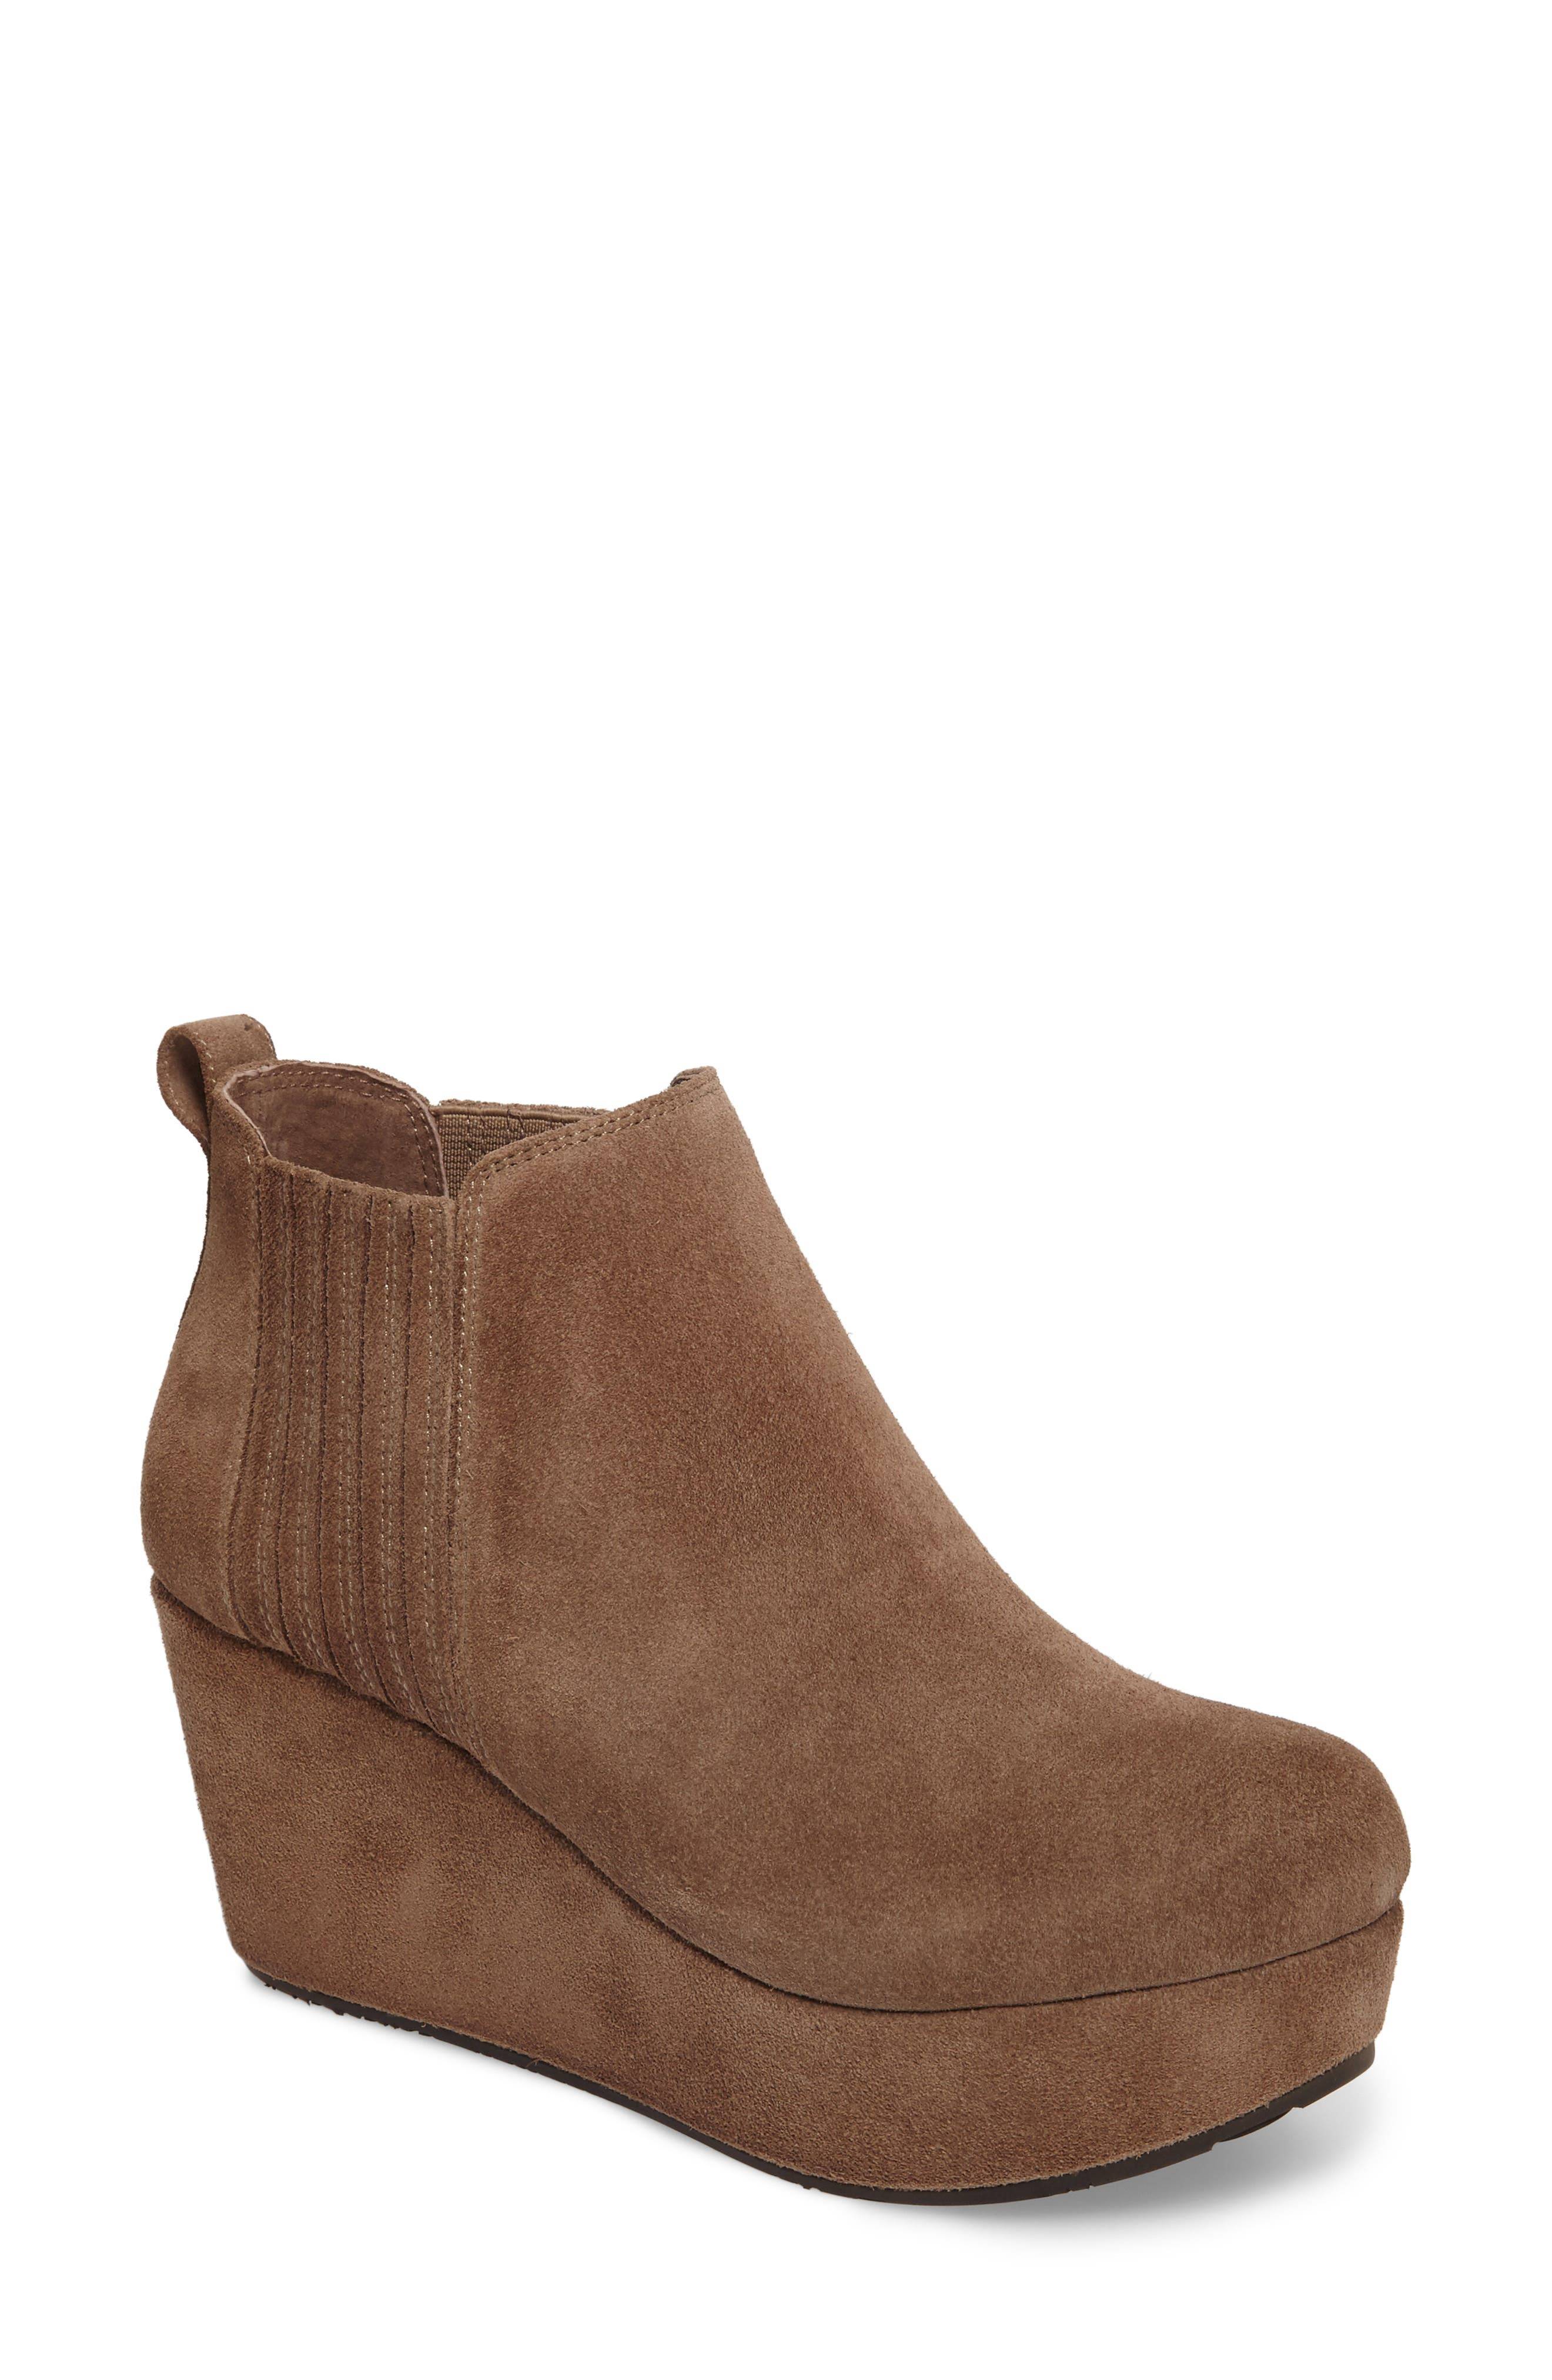 Walden Wedge Bootie,                         Main,                         color, Taupe Suede